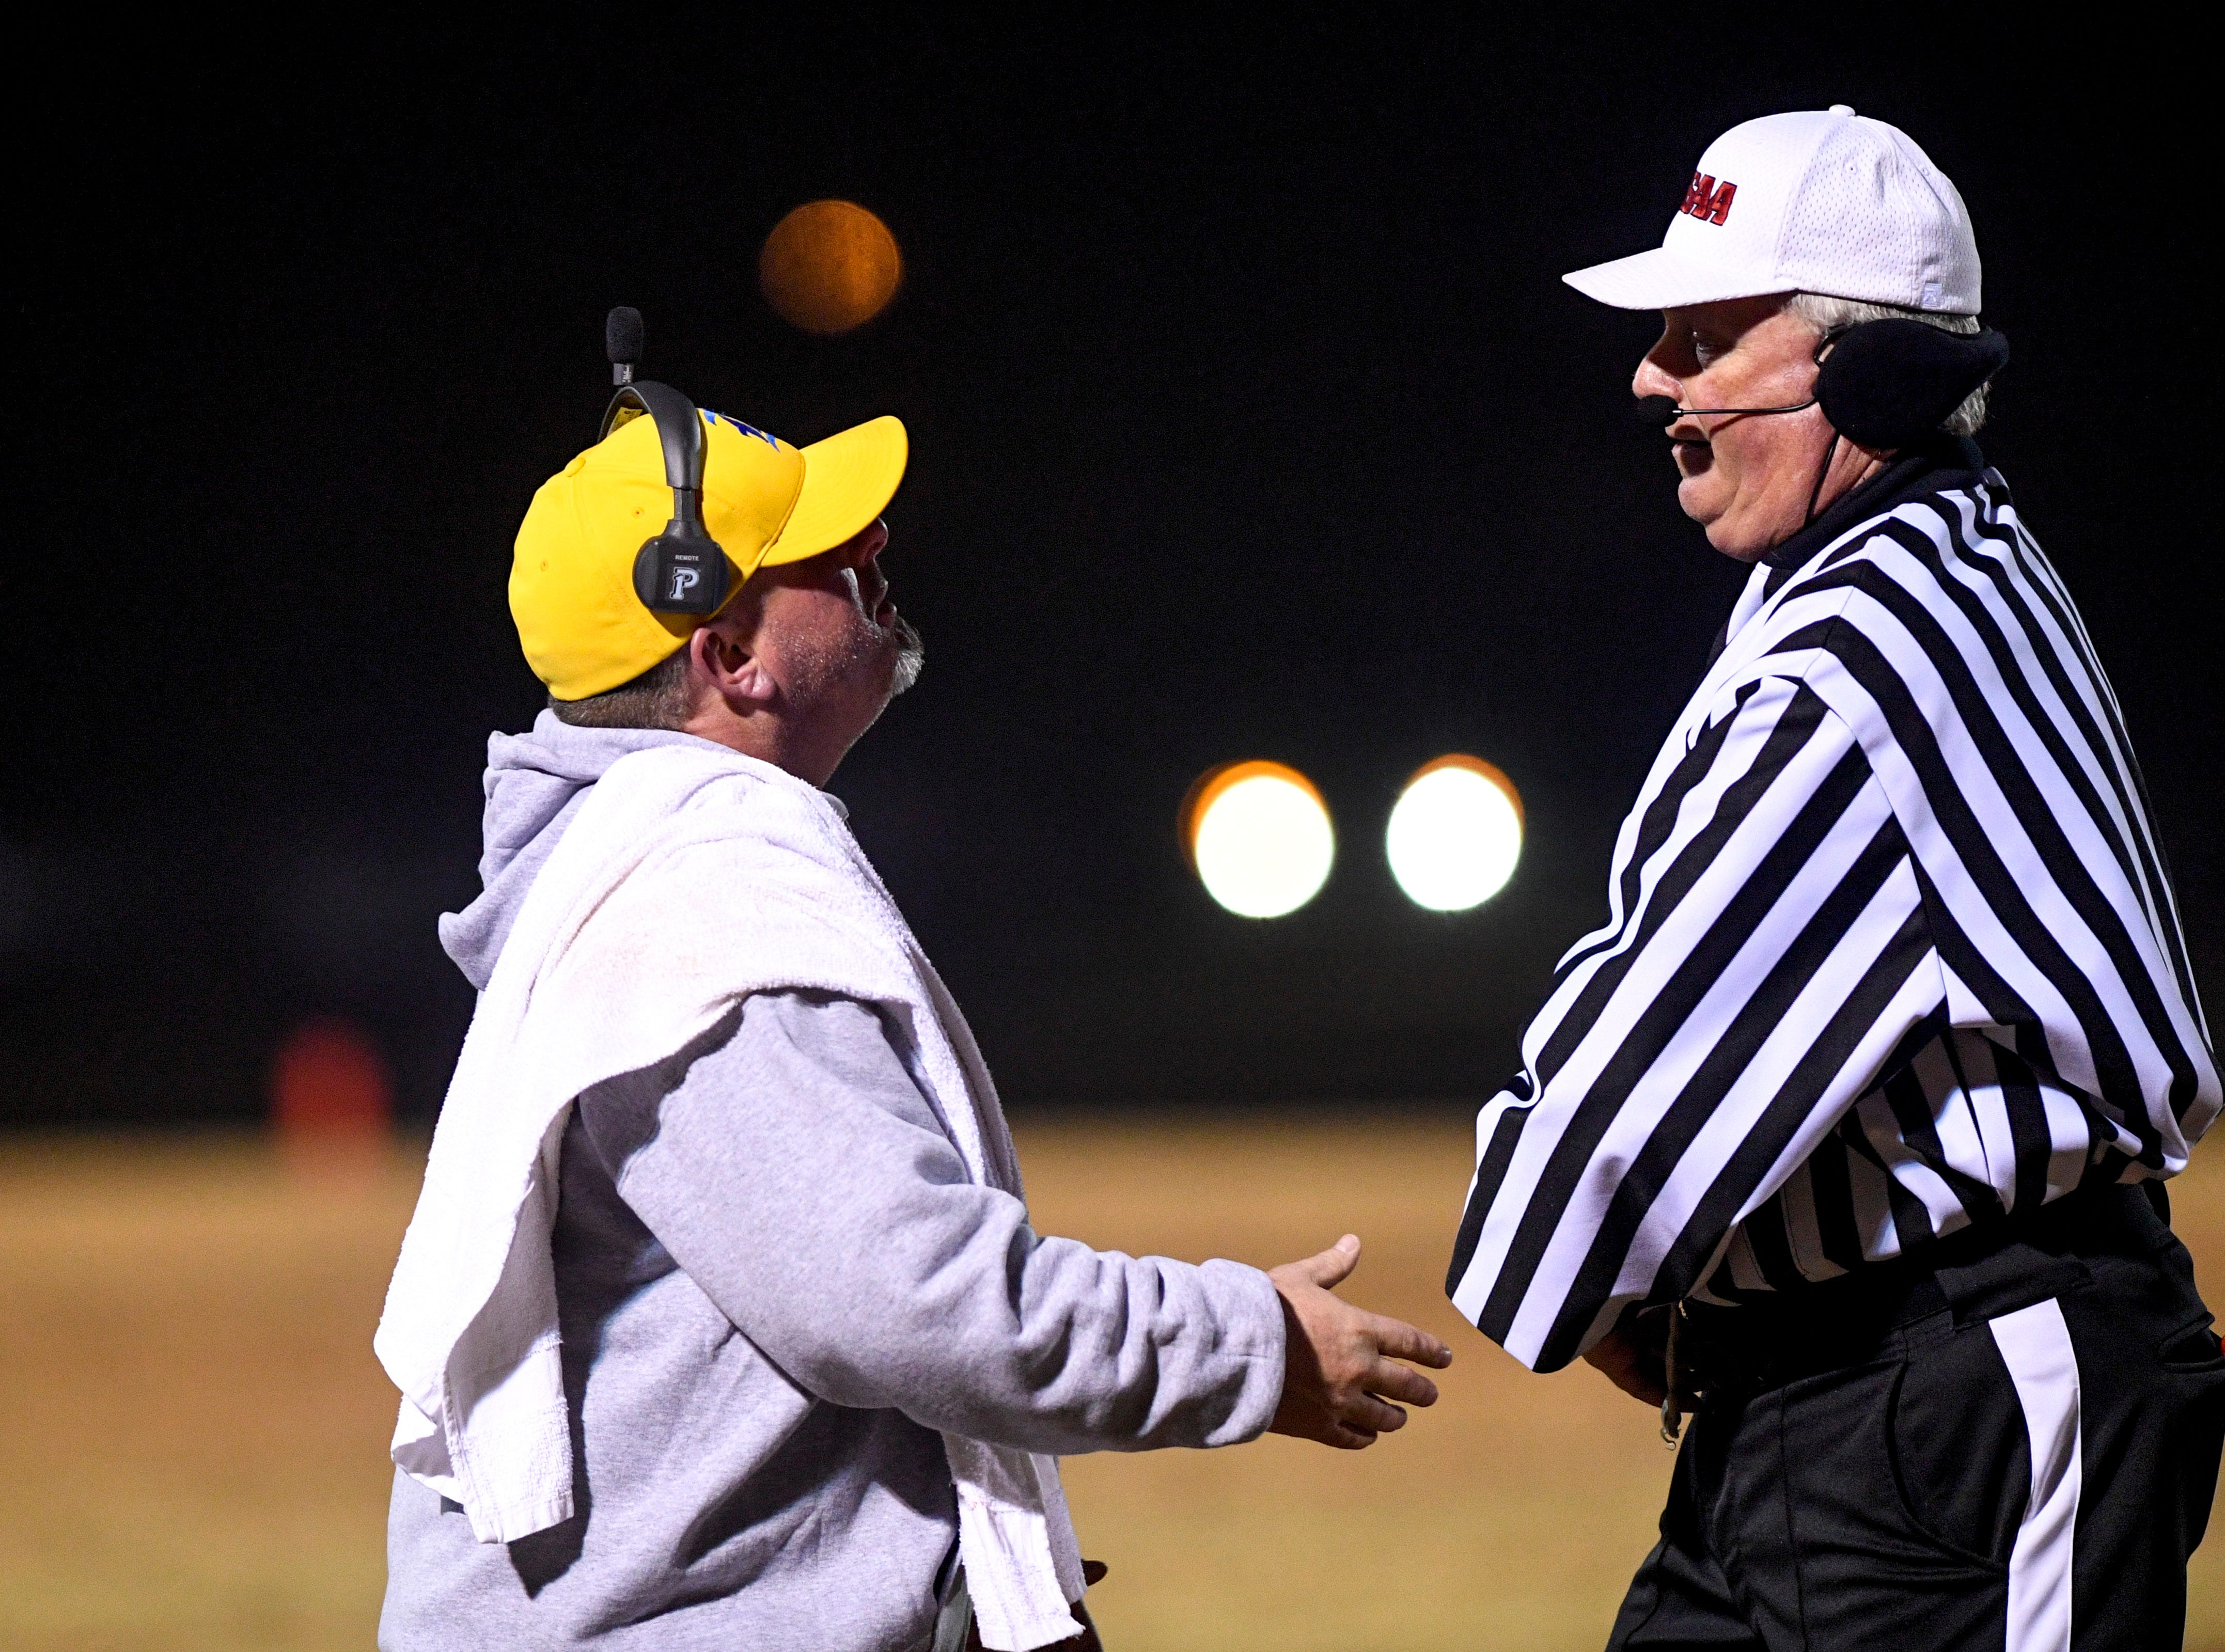 Riverside's head coach Johnnie Frost objects to a referee during the West Tennessee All-Star football game at University School of Jackson in Jackson, Tenn., on Friday, Dec. 7, 2018.